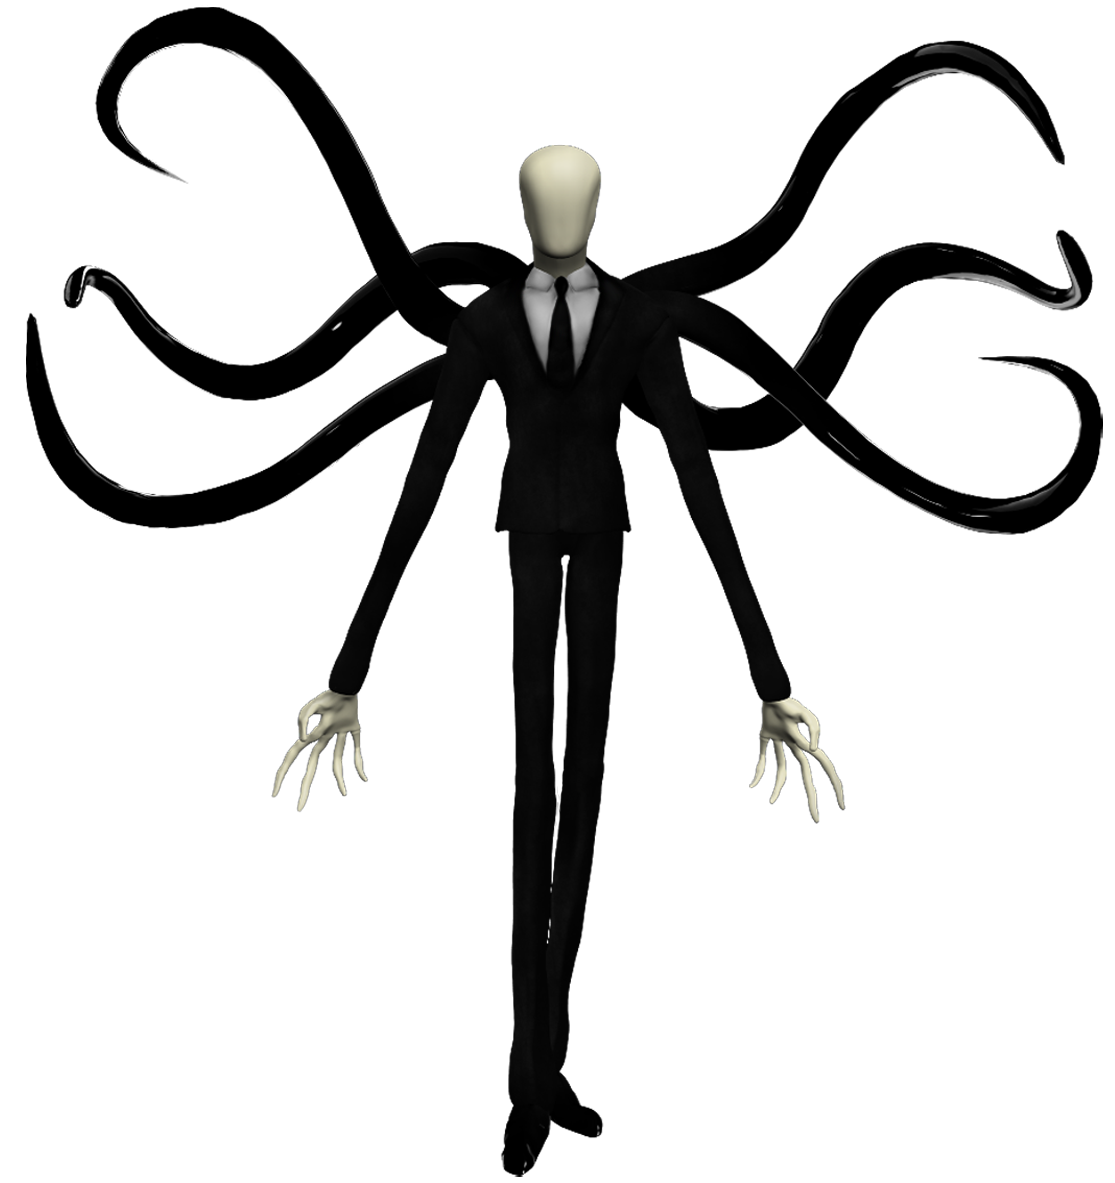 Thin man clipart clipart free download Slender Man | Fiction Wiki | FANDOM powered by Wikia clipart free download